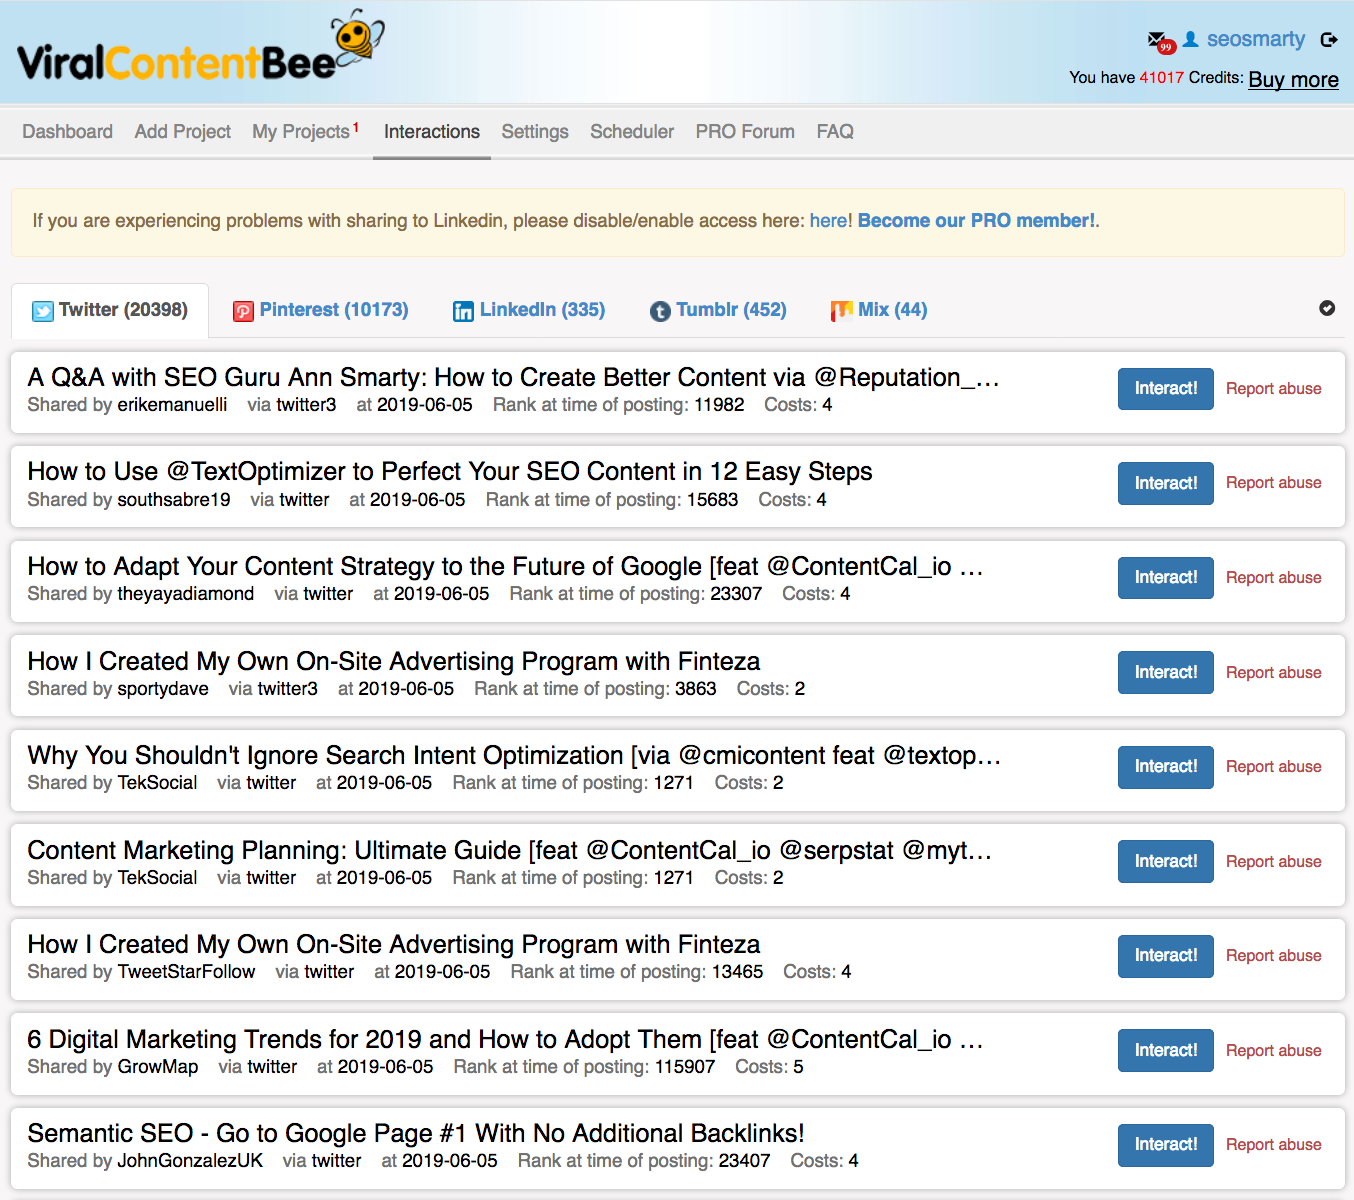 Viral Content Buzz interactions